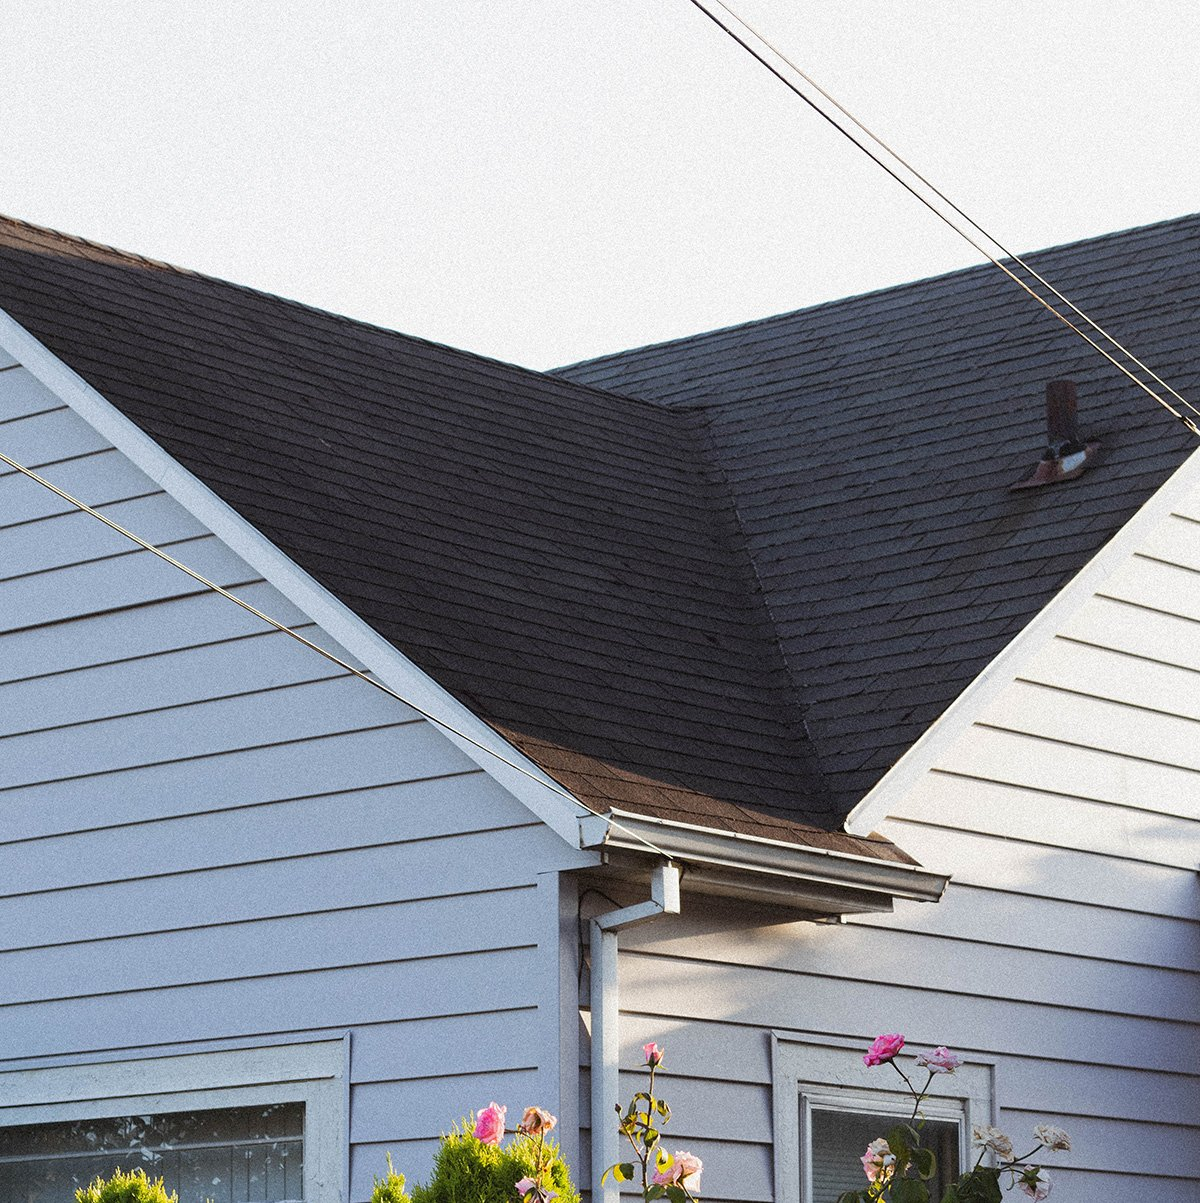 Roof Storm Damage Repair and Insurance with Moose Roofing